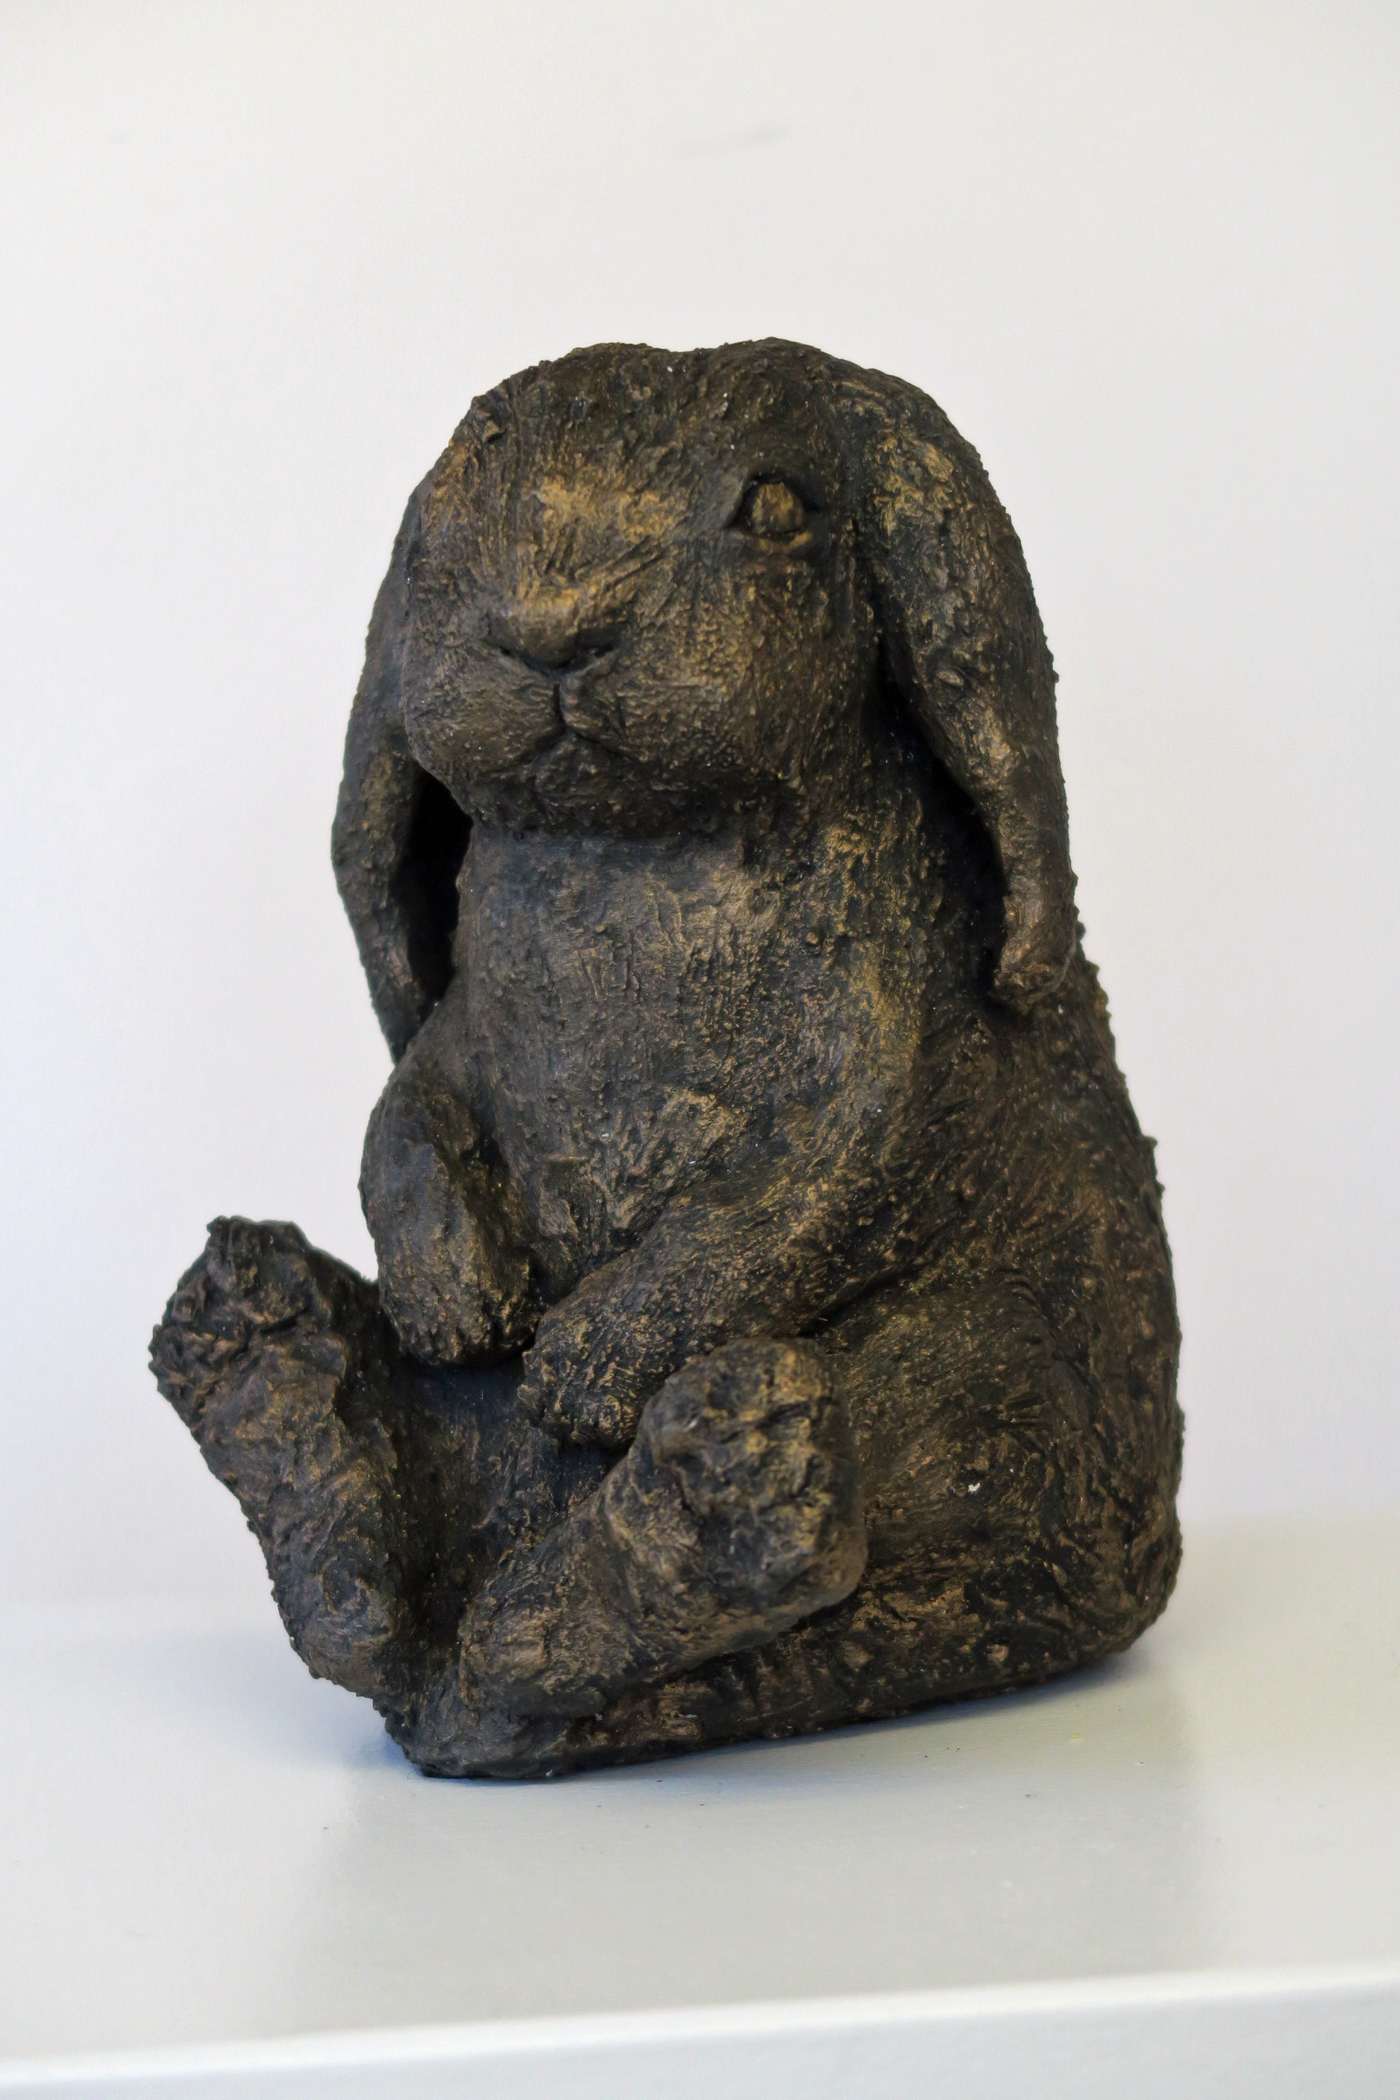 Rabbit By Anne Swatton - Ceramic - 8in high - £60